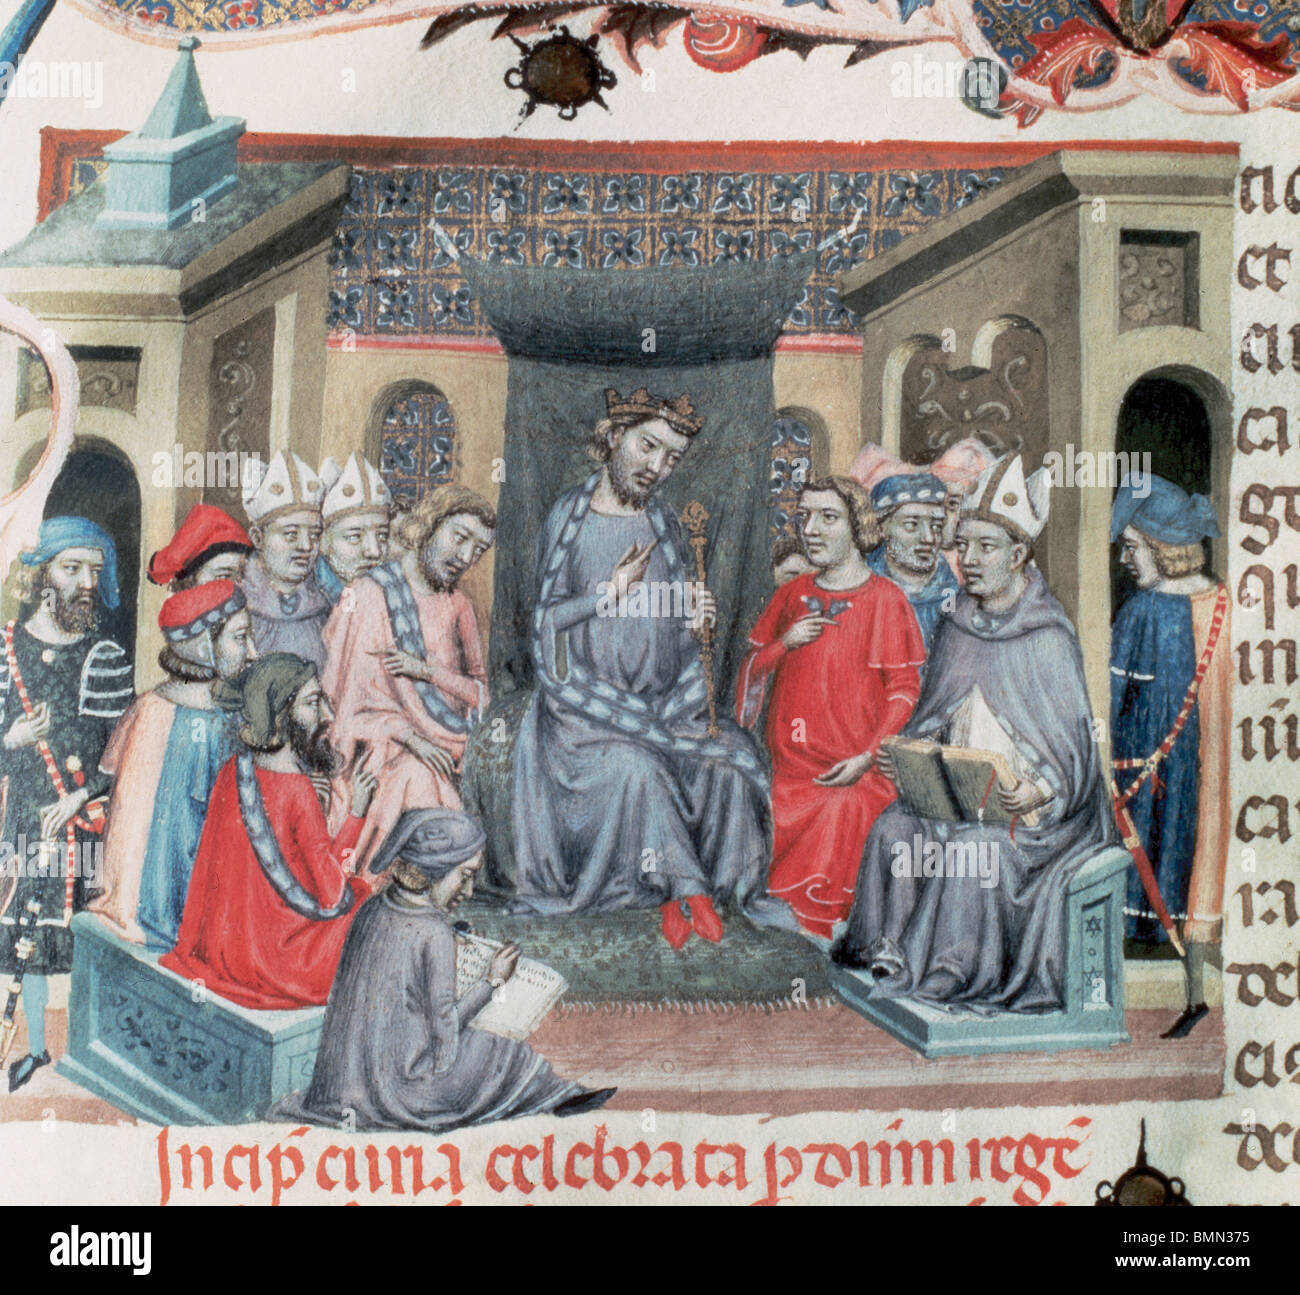 Alfonso IV of Aragon  (1299-1336). Codex of the Usages. Catalan Parliament assembled in Montblanc on 18 June, 1333. Stock Photo